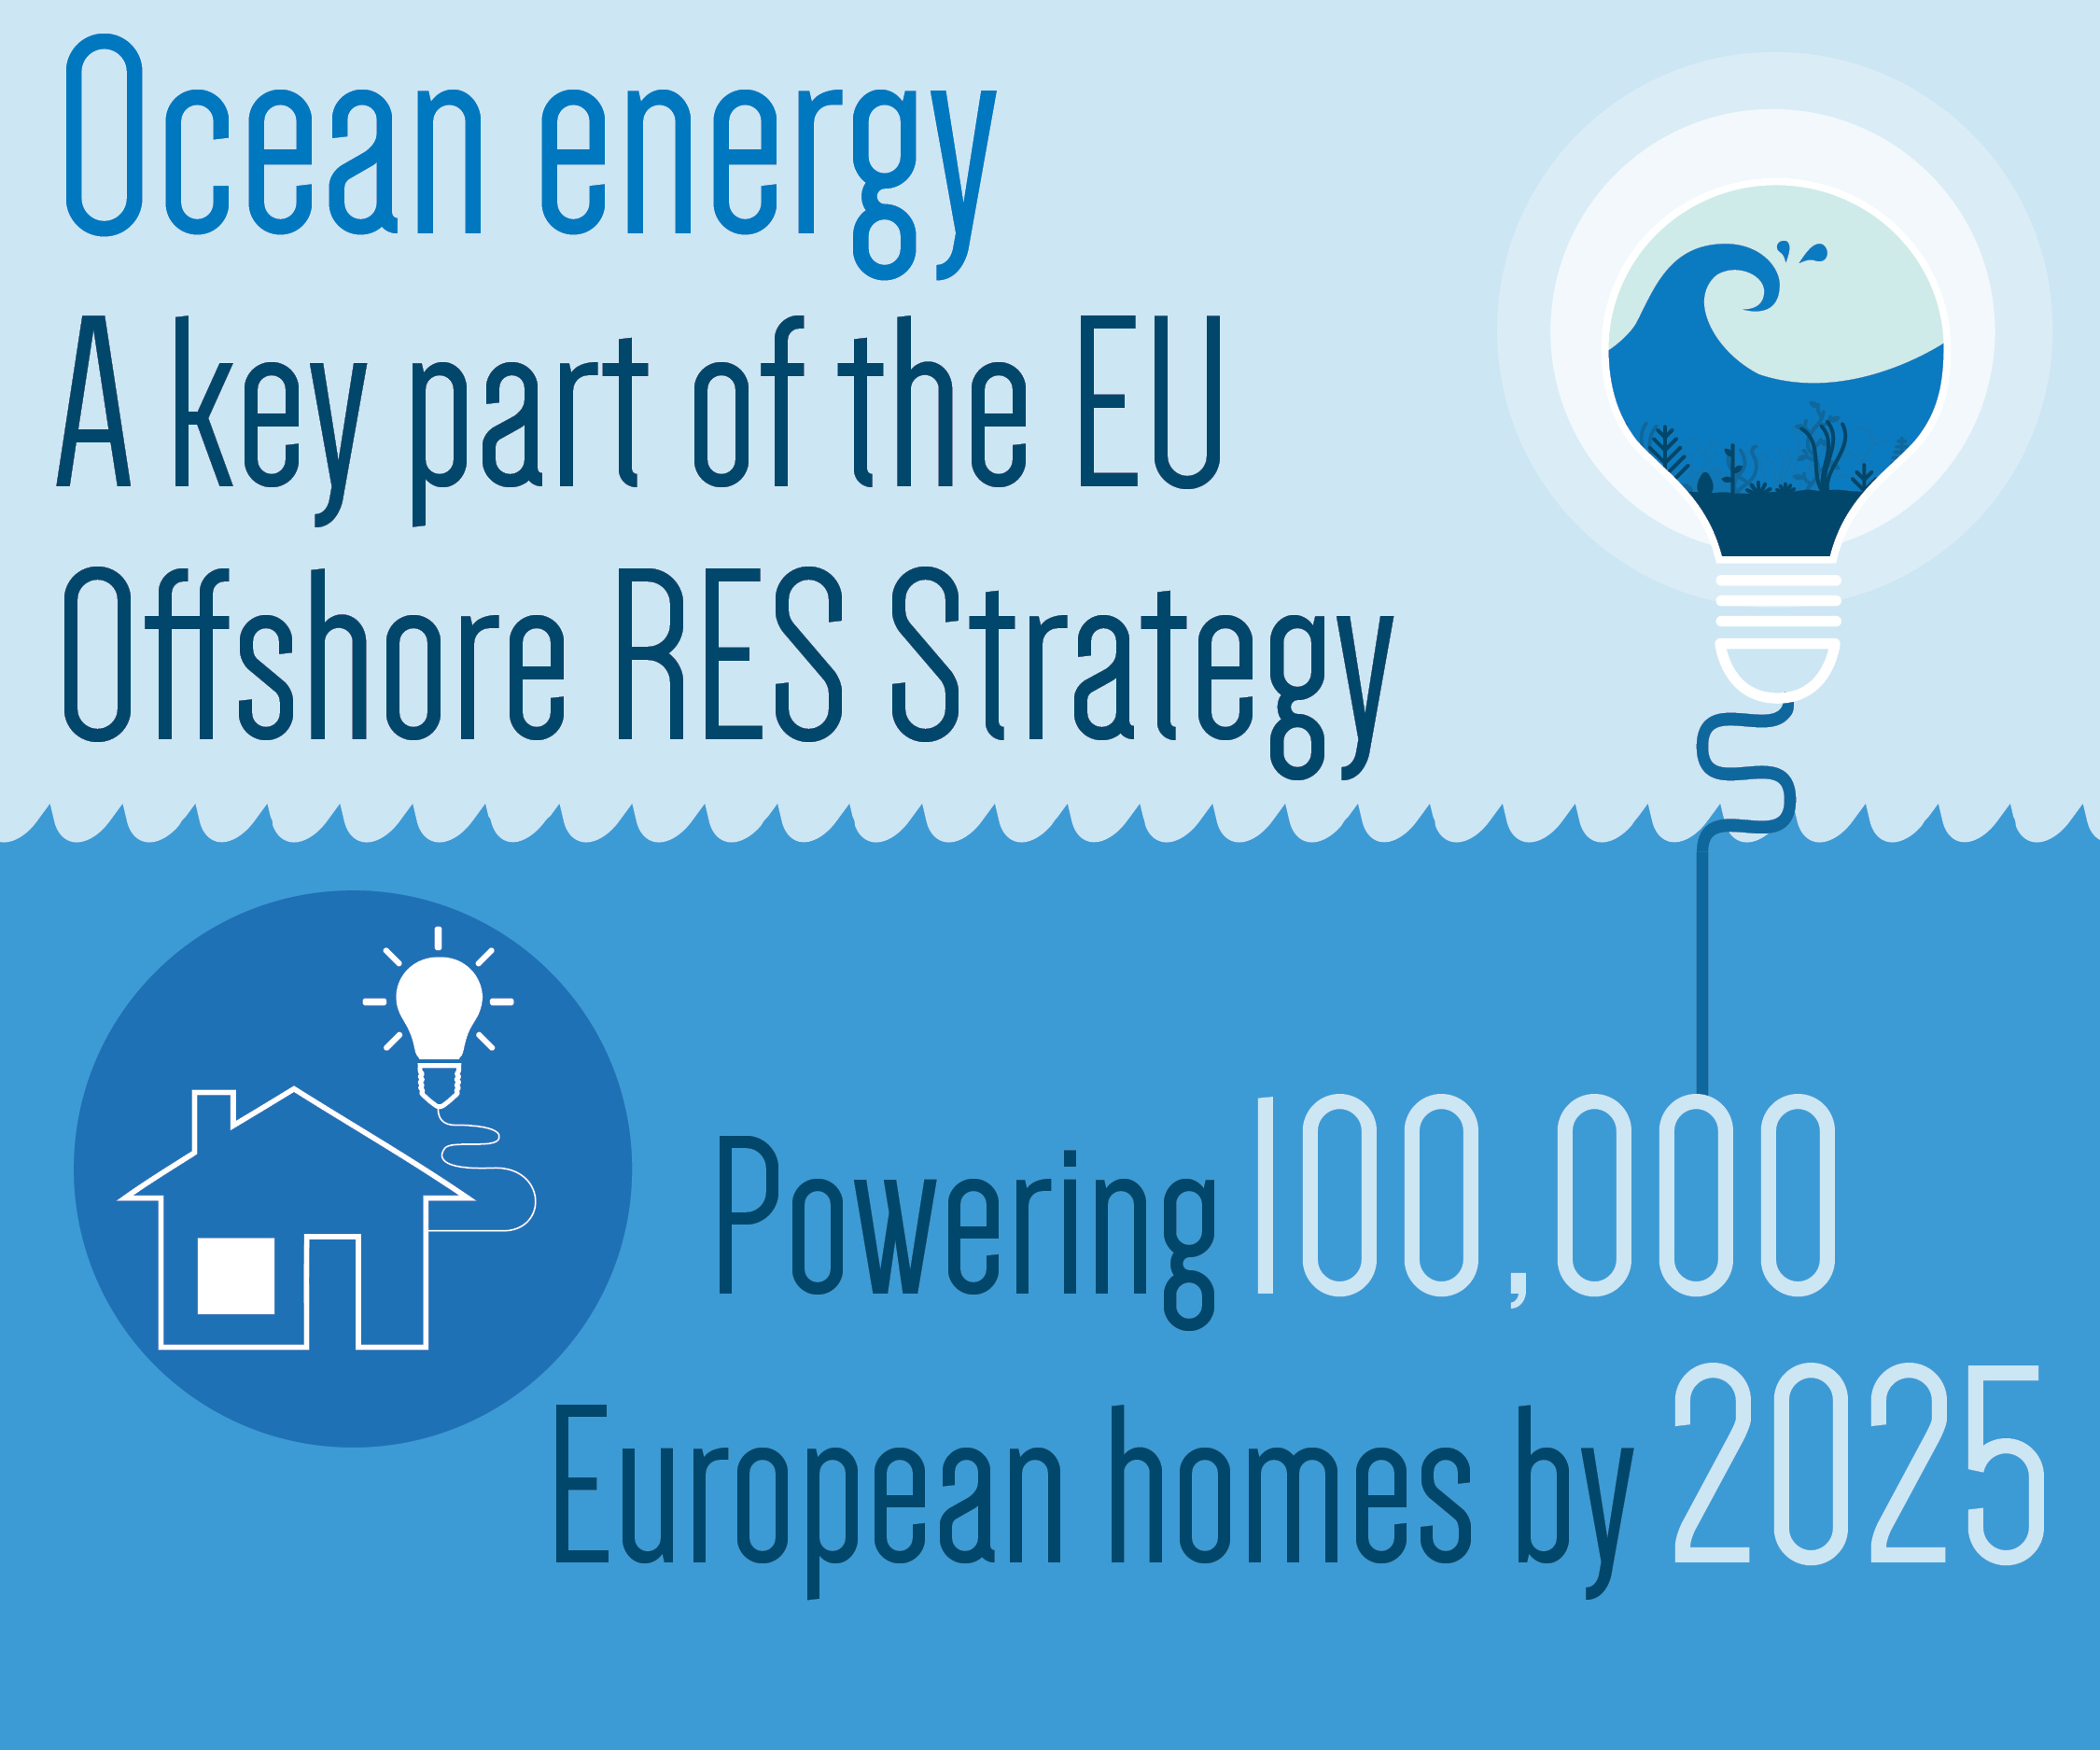 Ocean Energy powering European homes